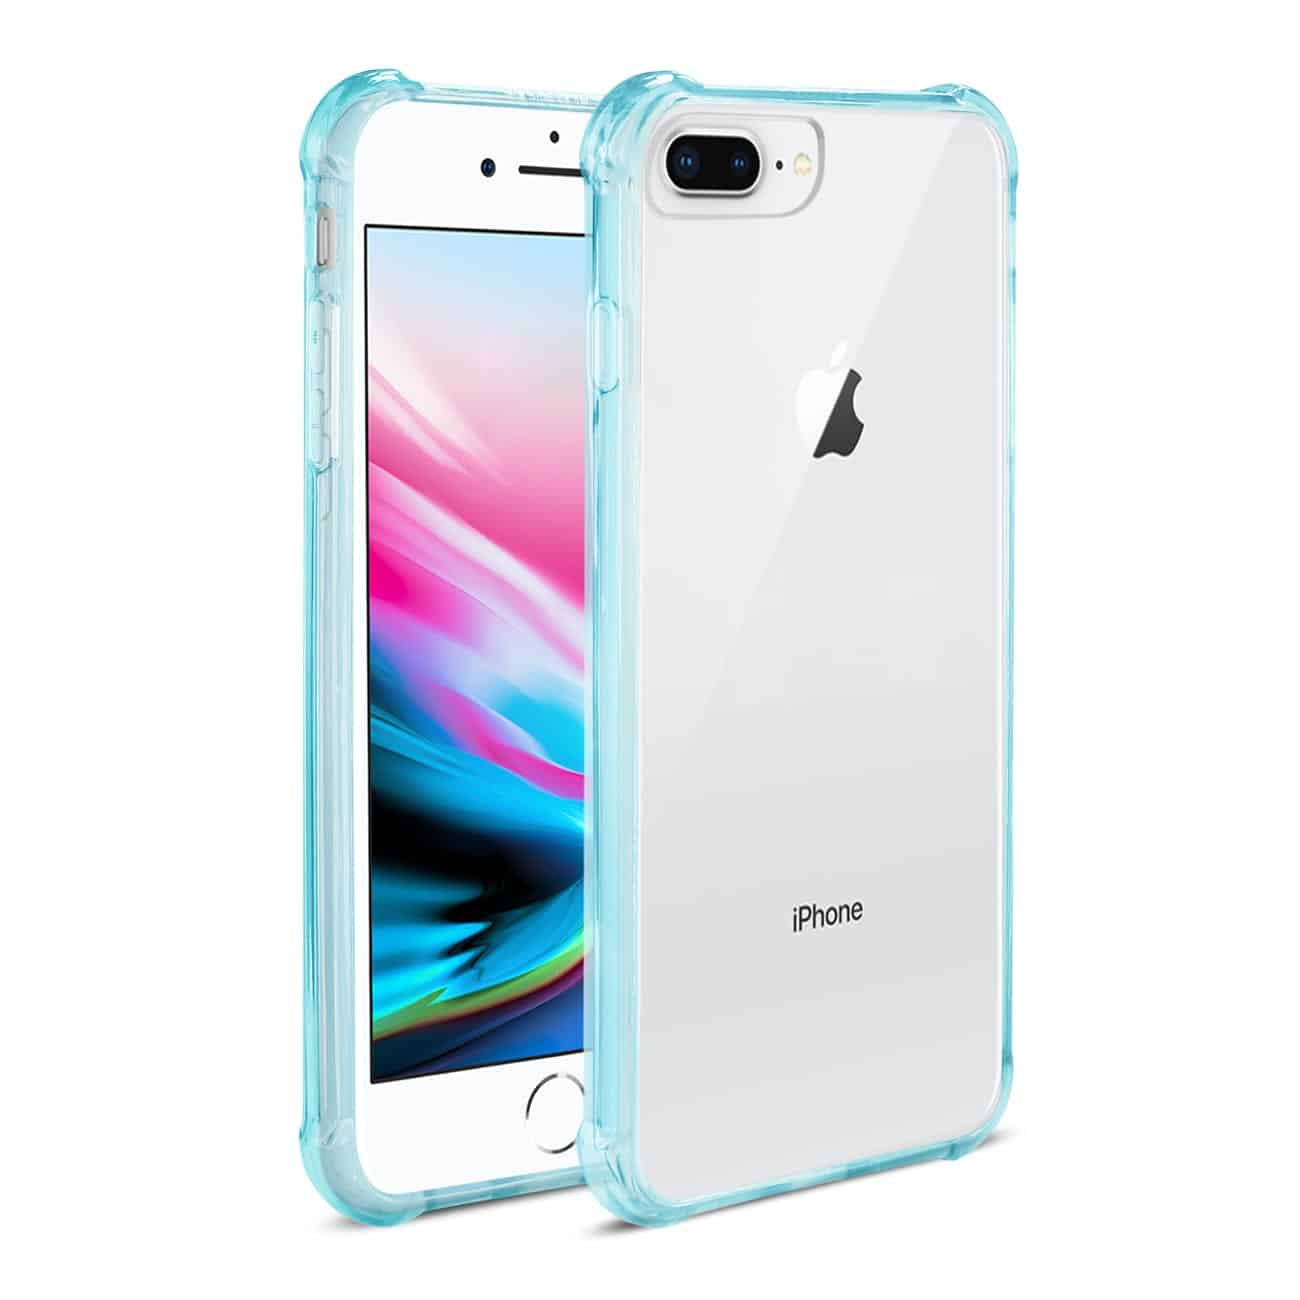 iPhone 8 Plus Clear Bumper Case With Air Cushion Protection In Clear Navy